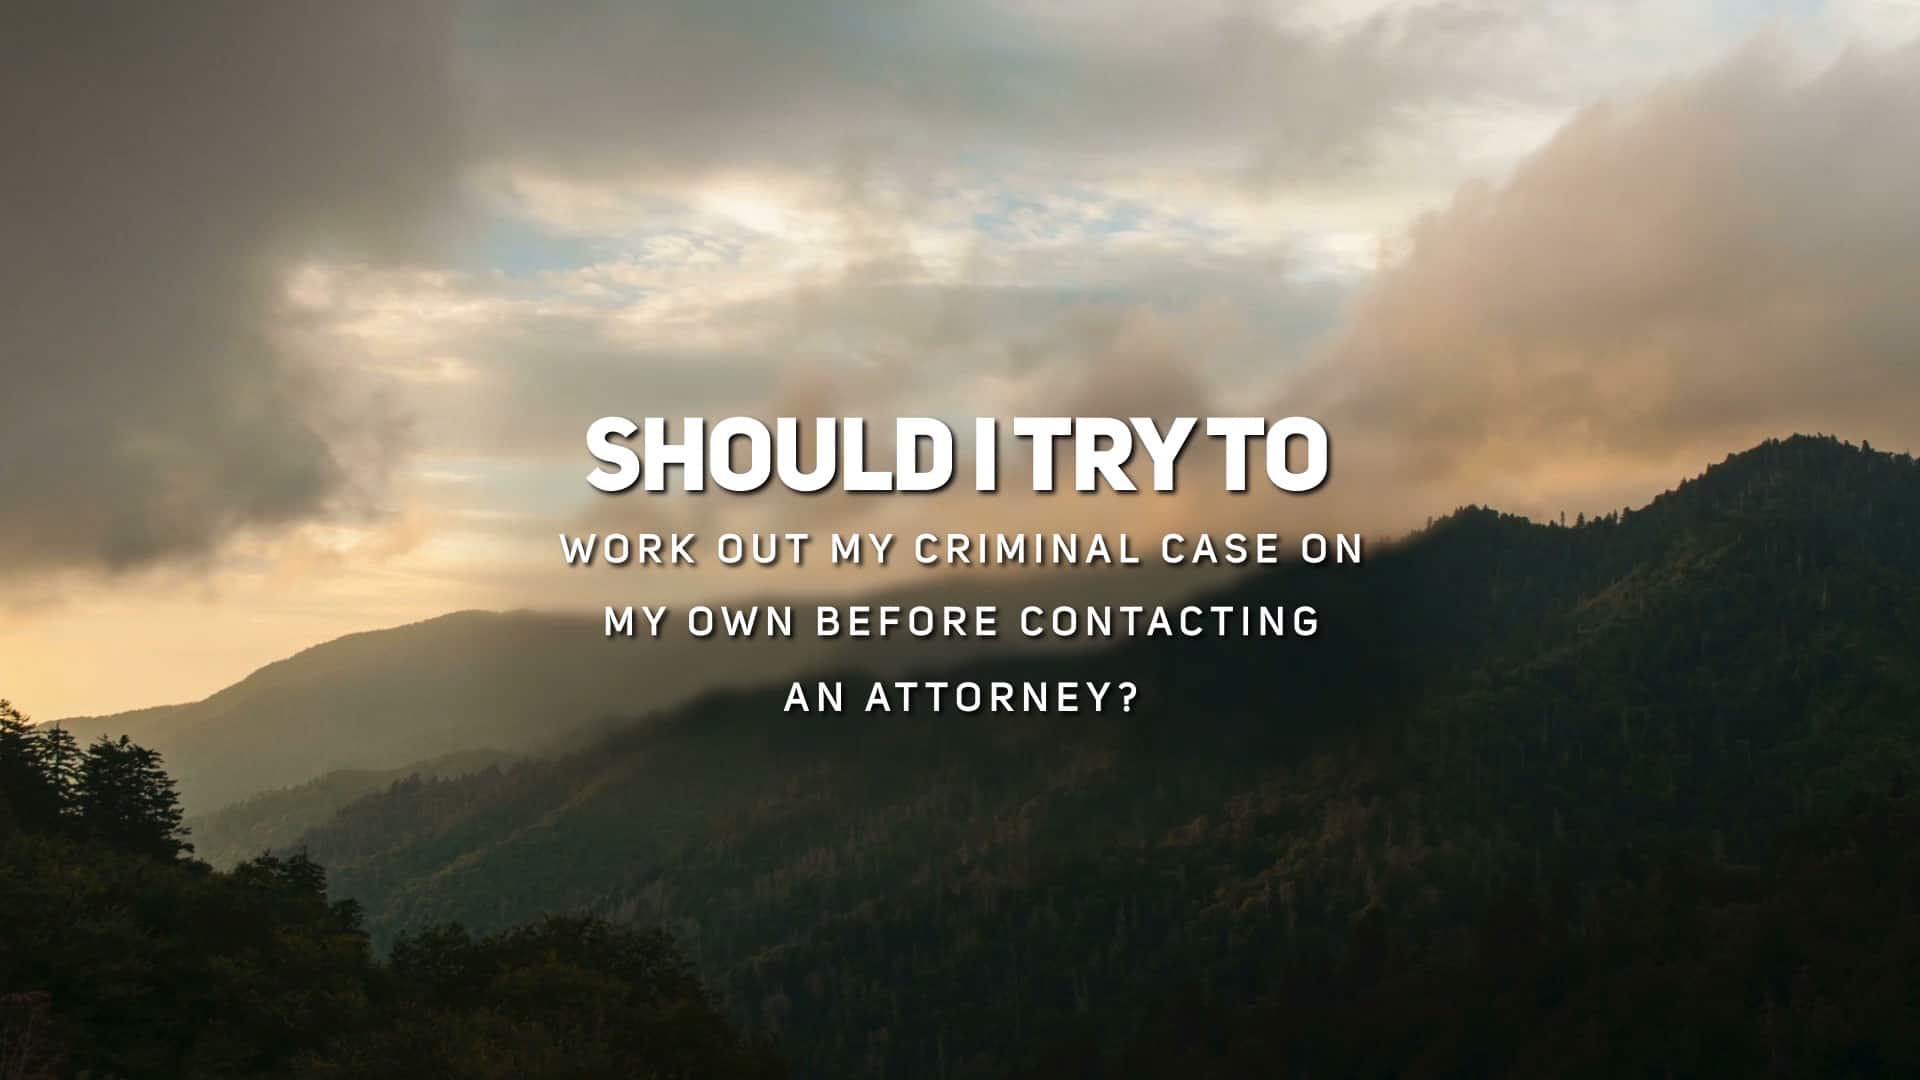 Should I Try to Work Out My Criminal Case on My Own Before Contacting an Attorney